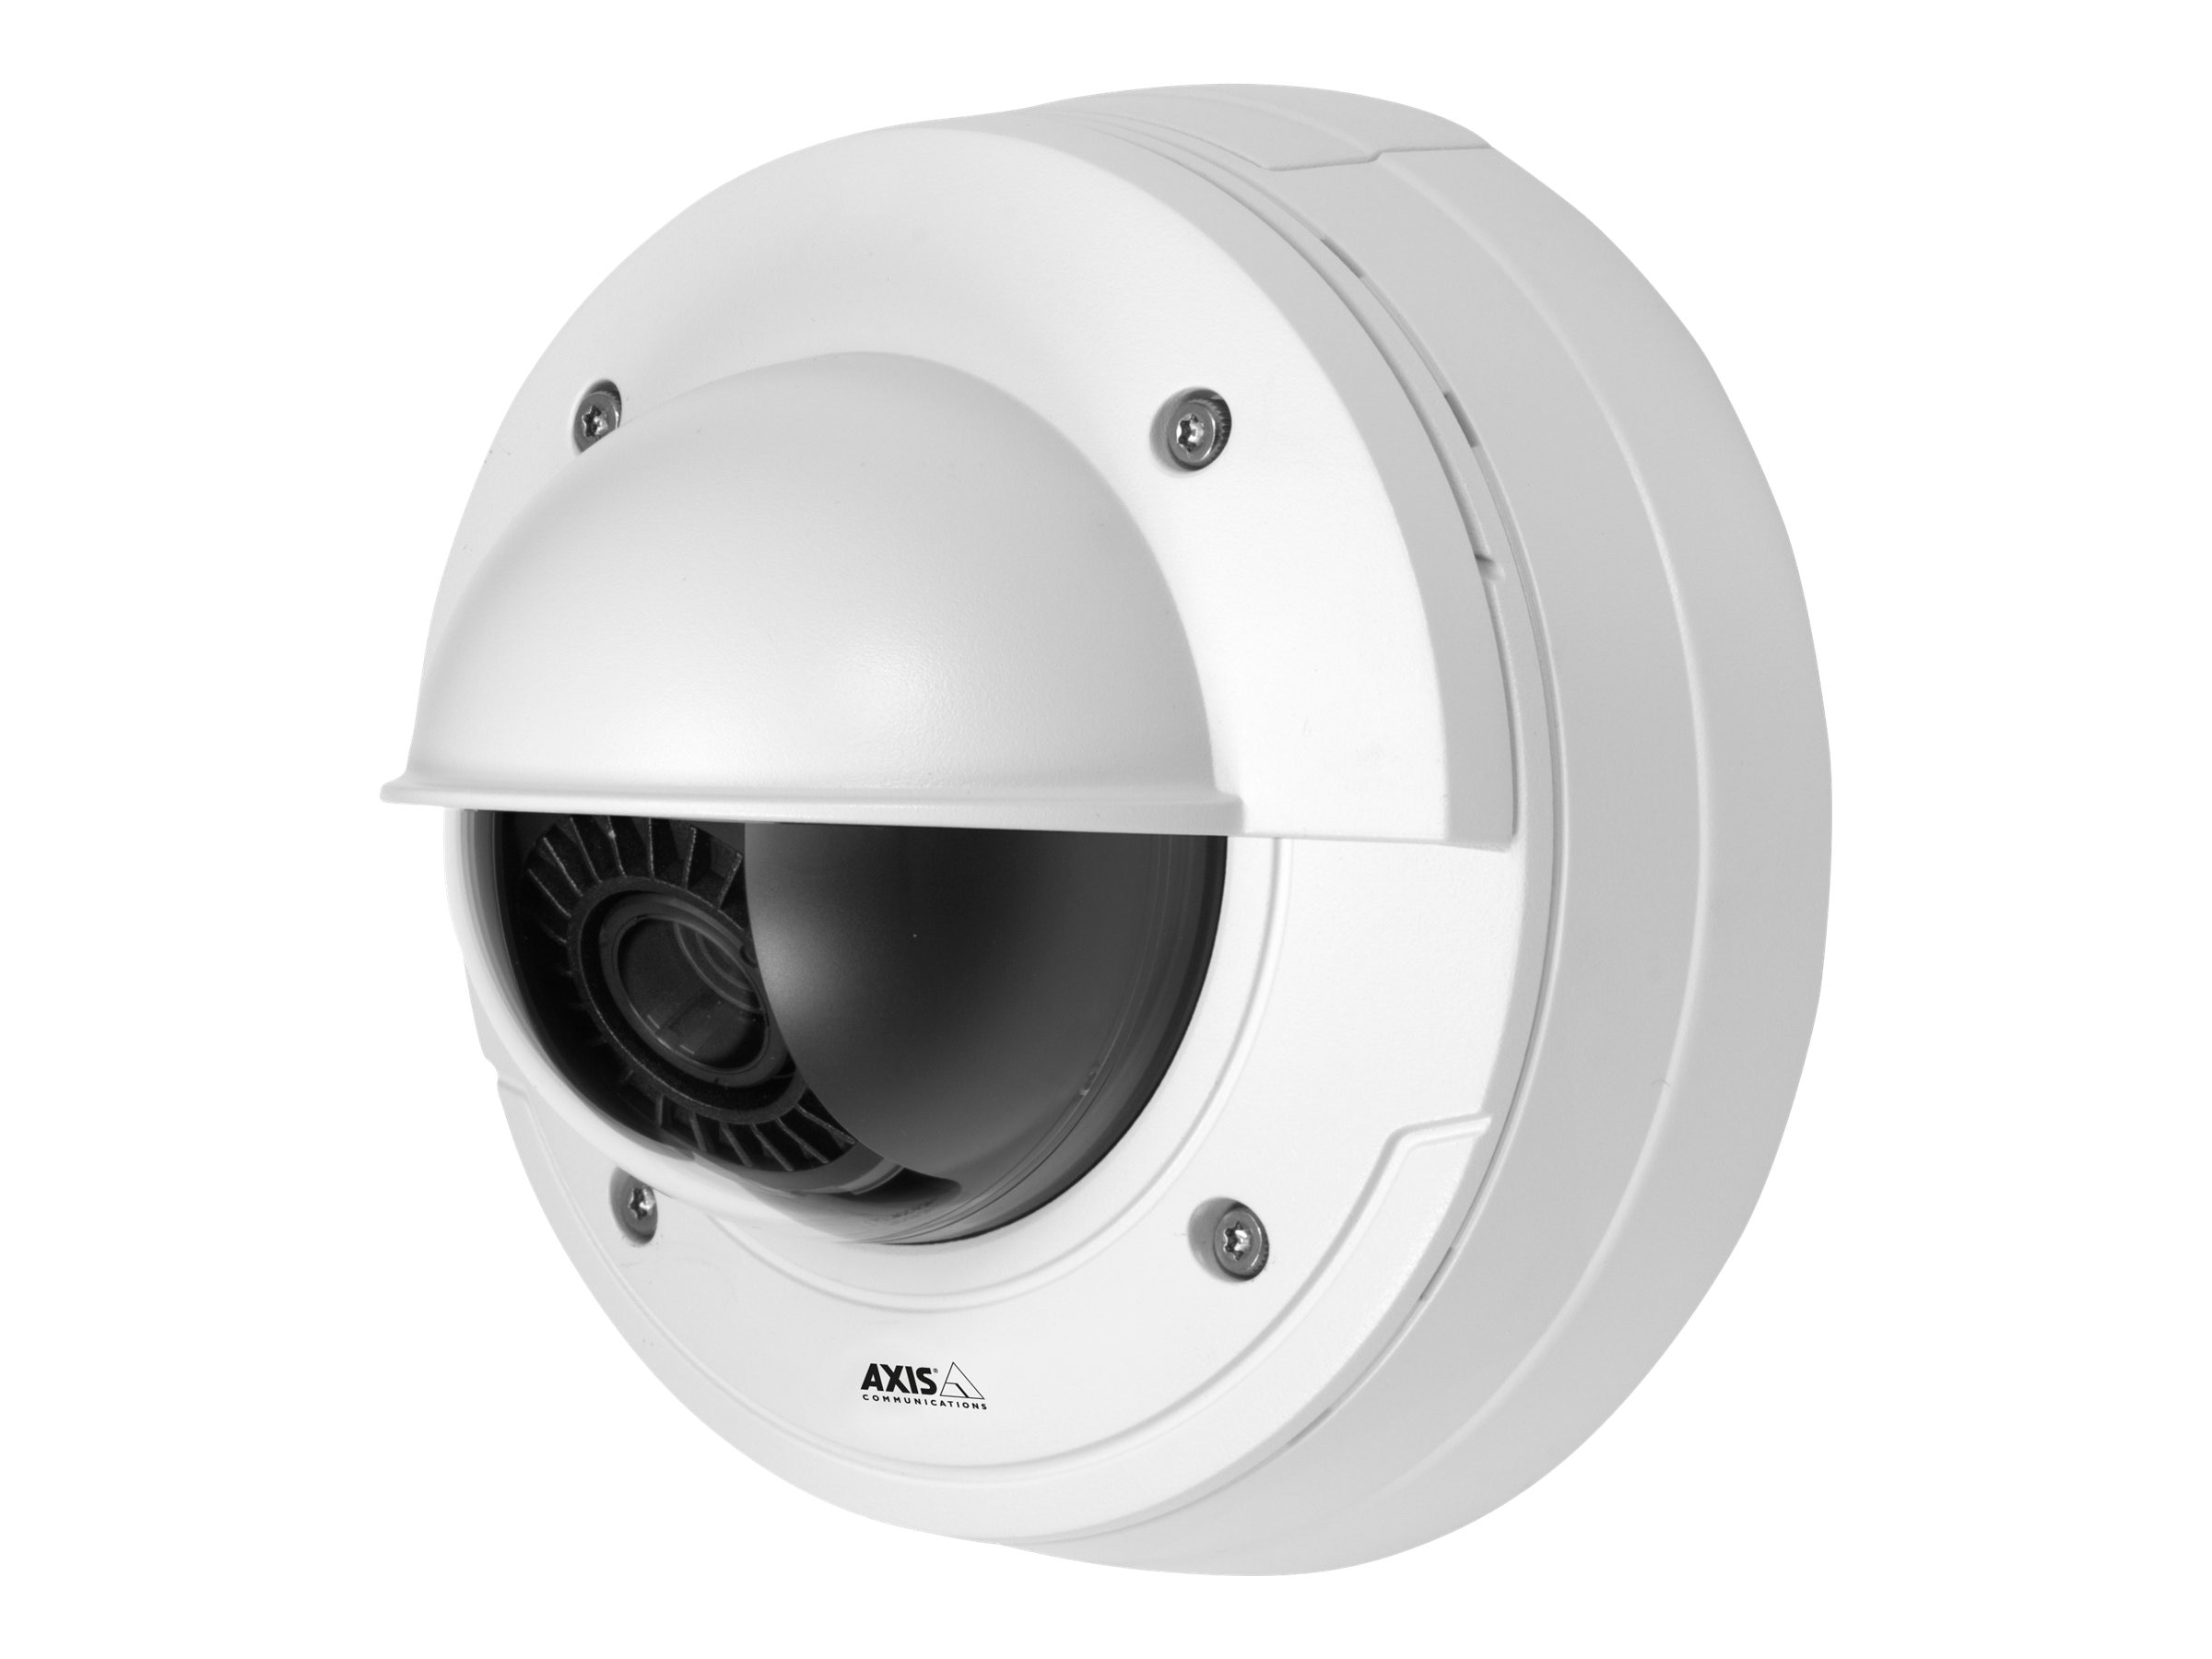 Axis P3367-VE Fixed Vandal-Proof Dome, Outdoor